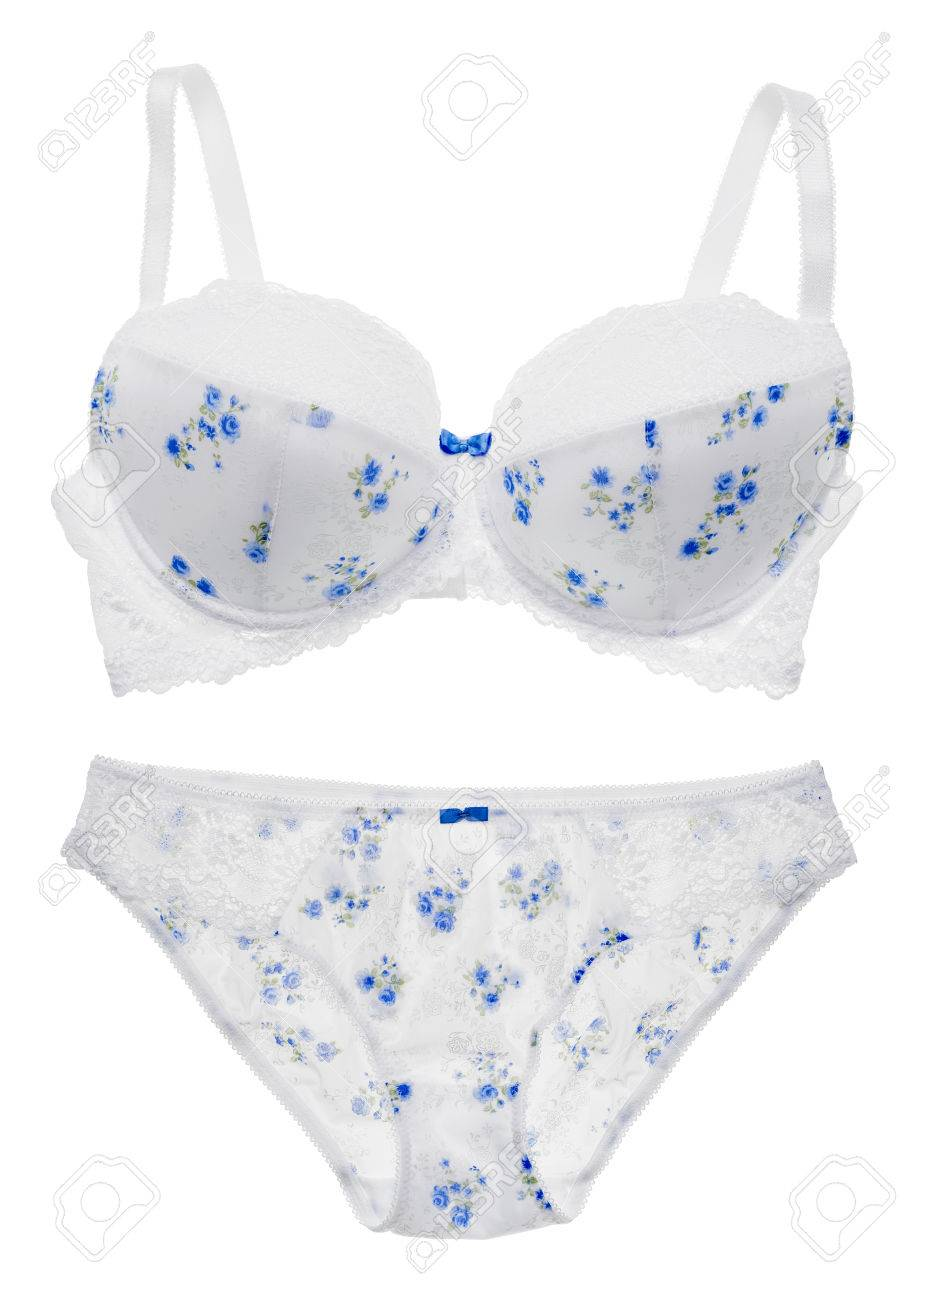 2e2feac4ce Stock Photo - White in a floral pattern bra and panties lingerie set  isolated on white background.